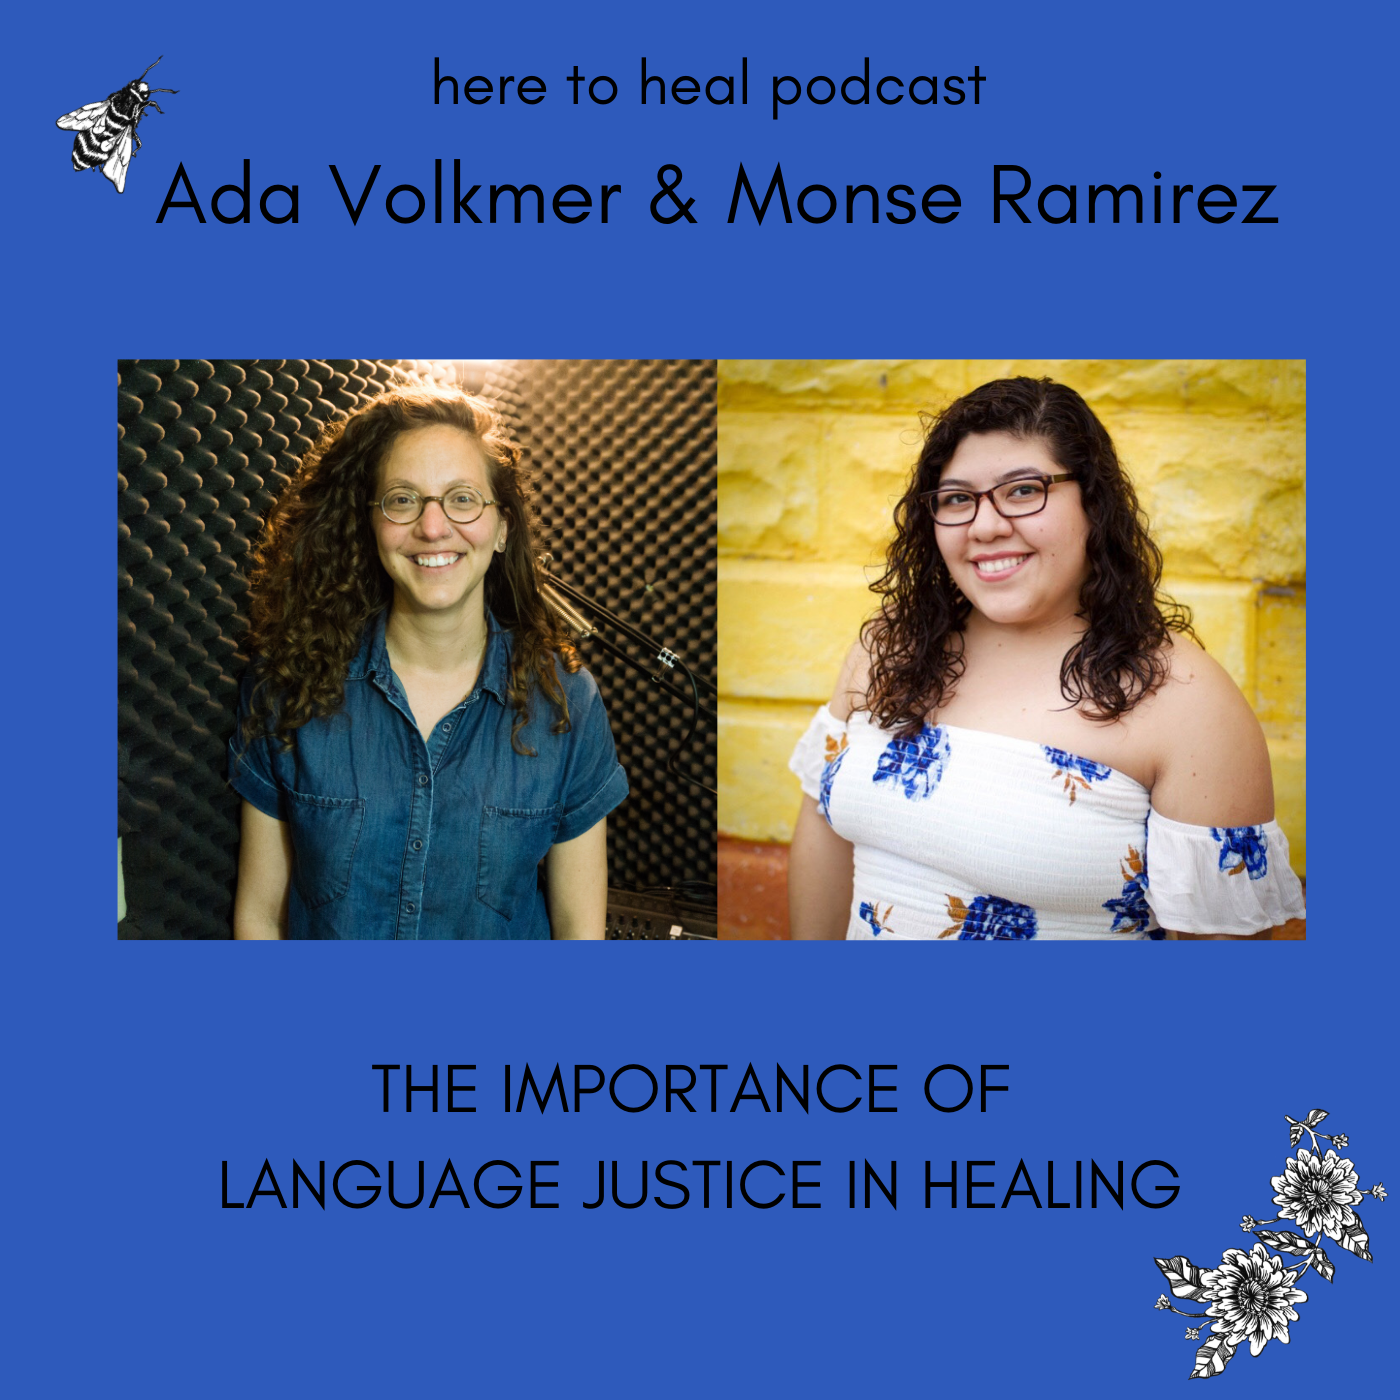 The Importance of Language Justice and Healing